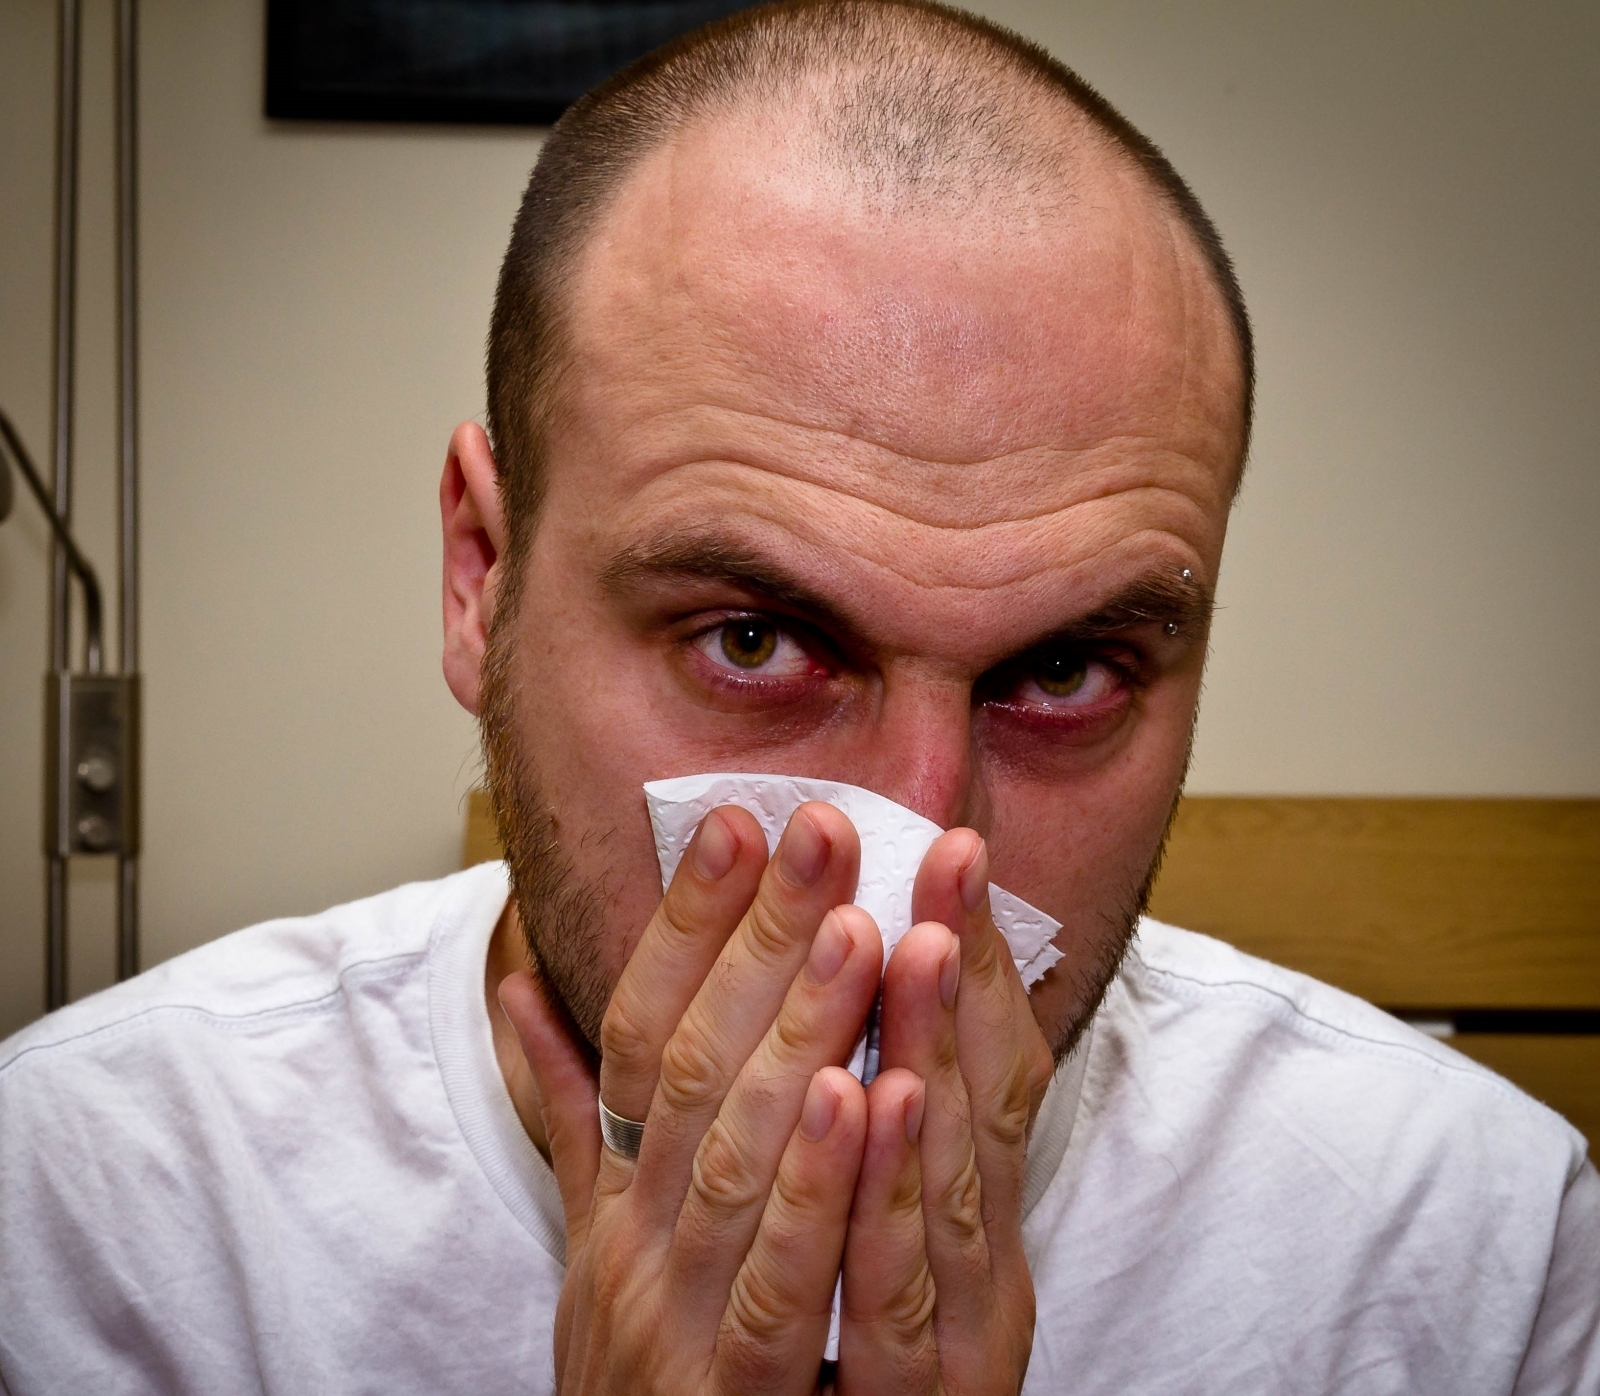 Man flu is real, claim scientists